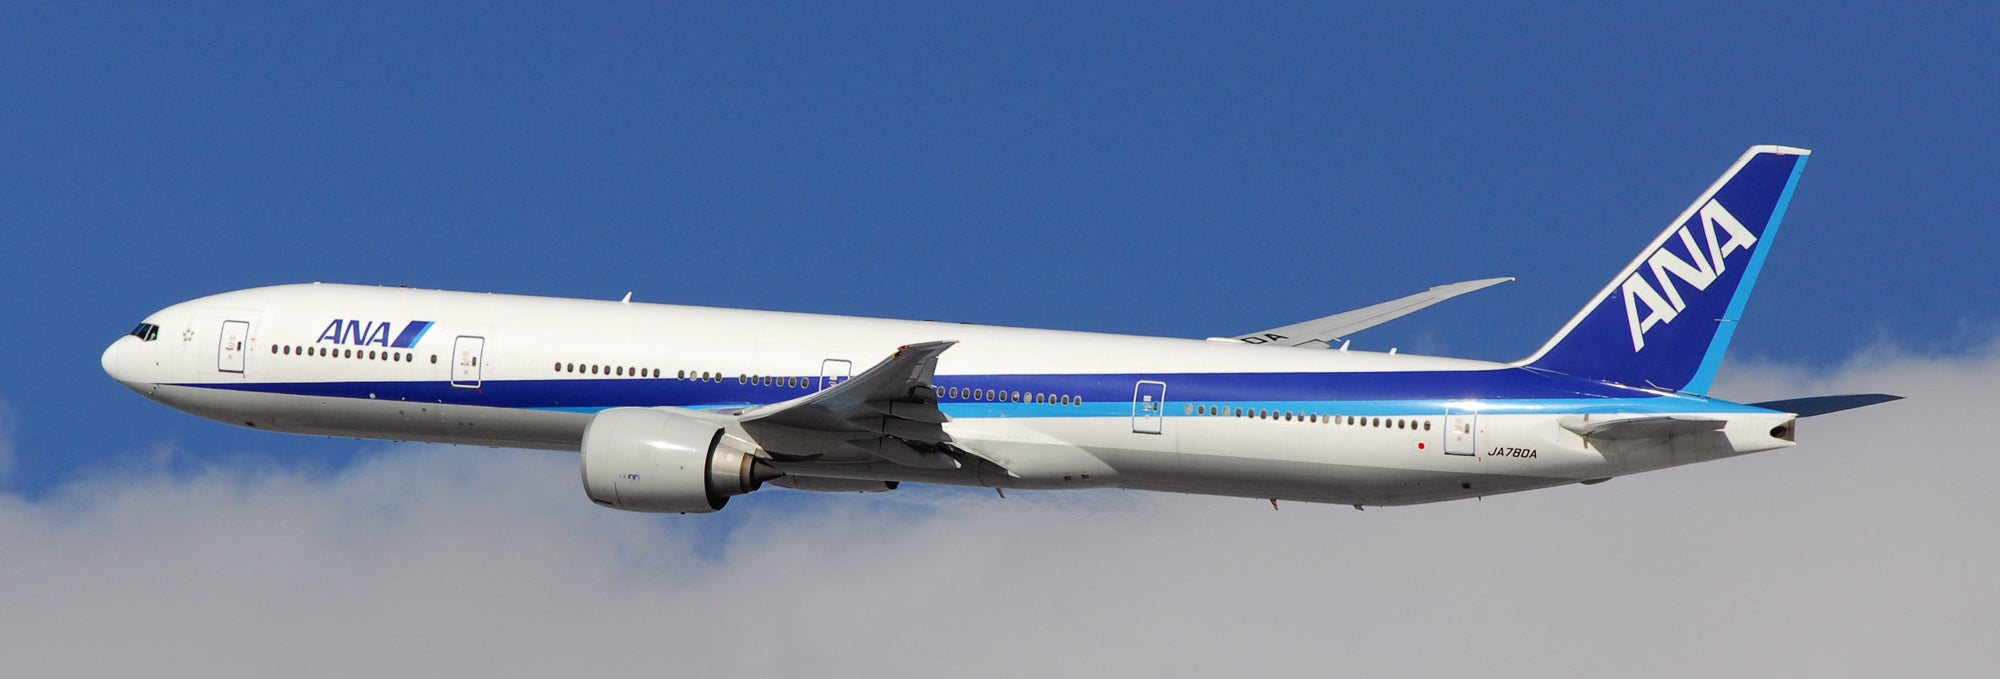 25 years of the 777: My story with the Triple Seven in pictures